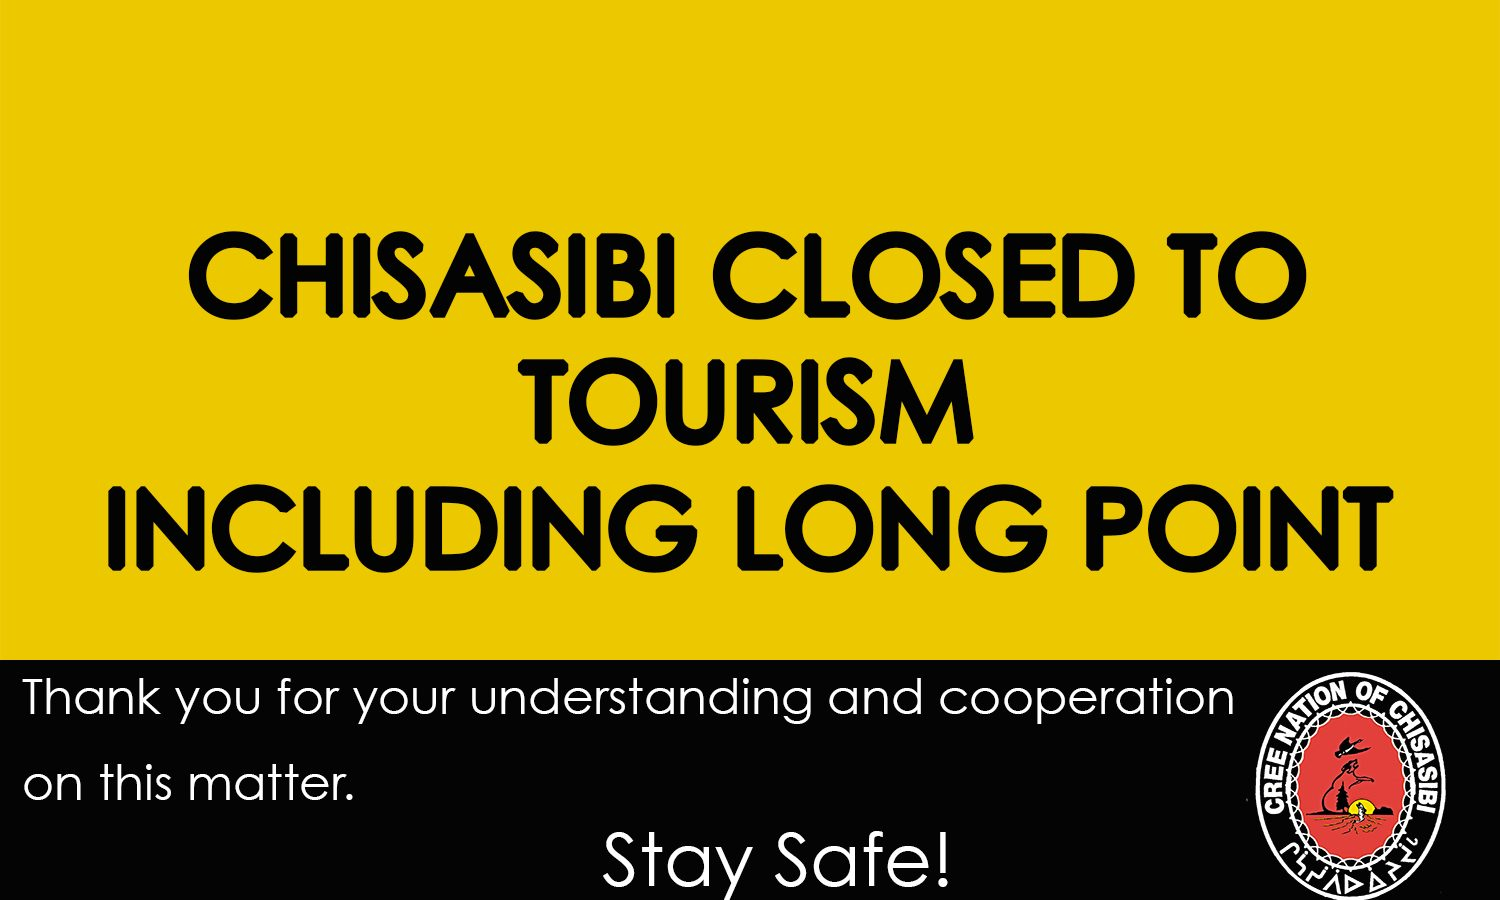 CLOSED TO TOURISM